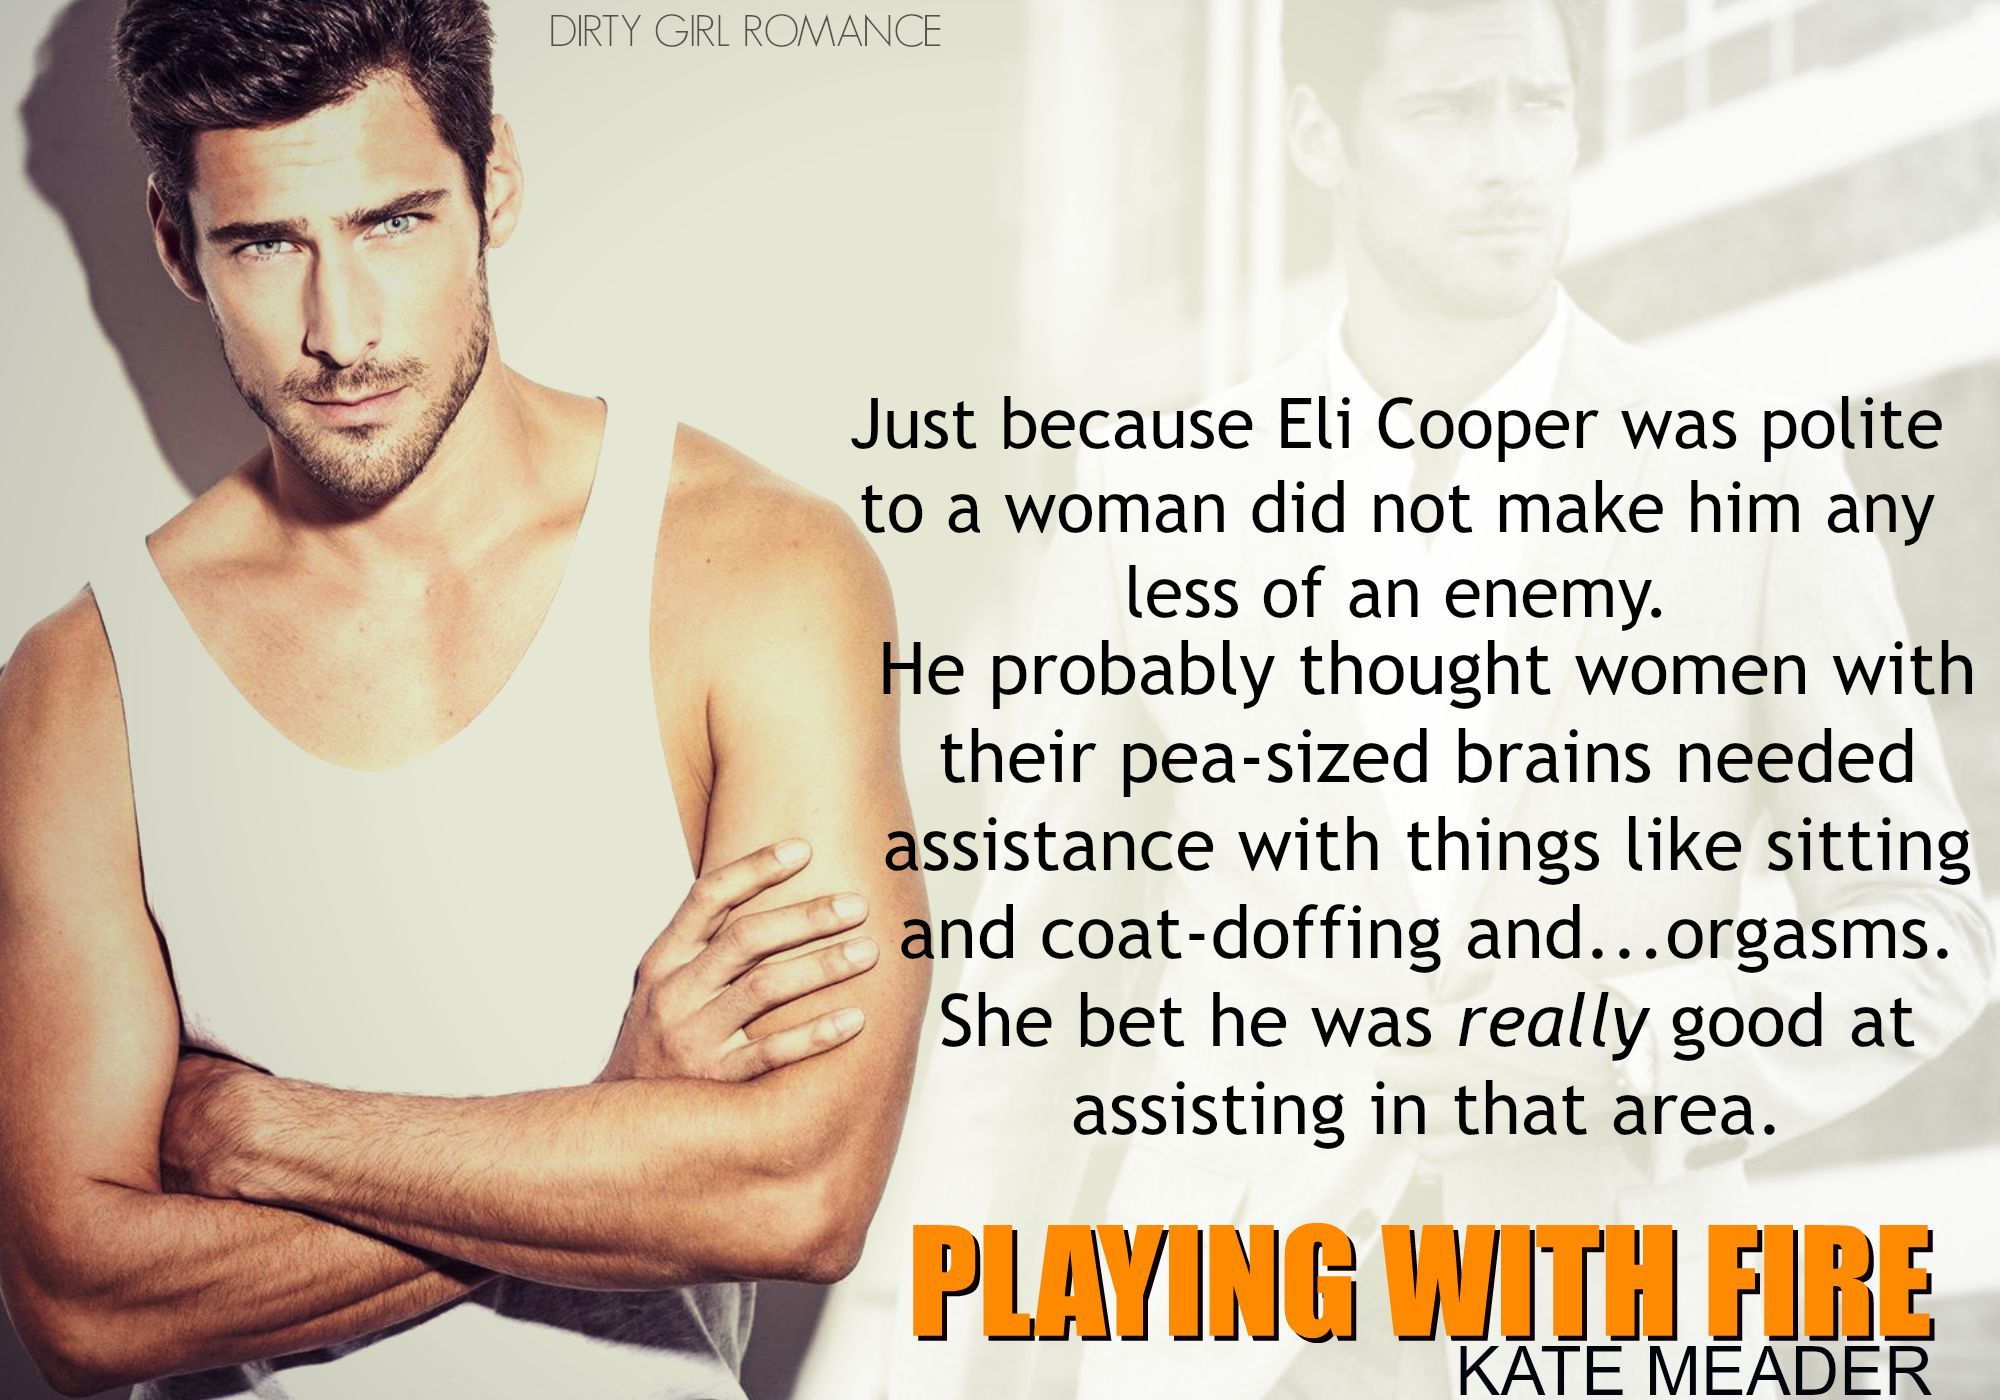 Playing with Fire (Hot in Chicago, #2) by Kate Meader